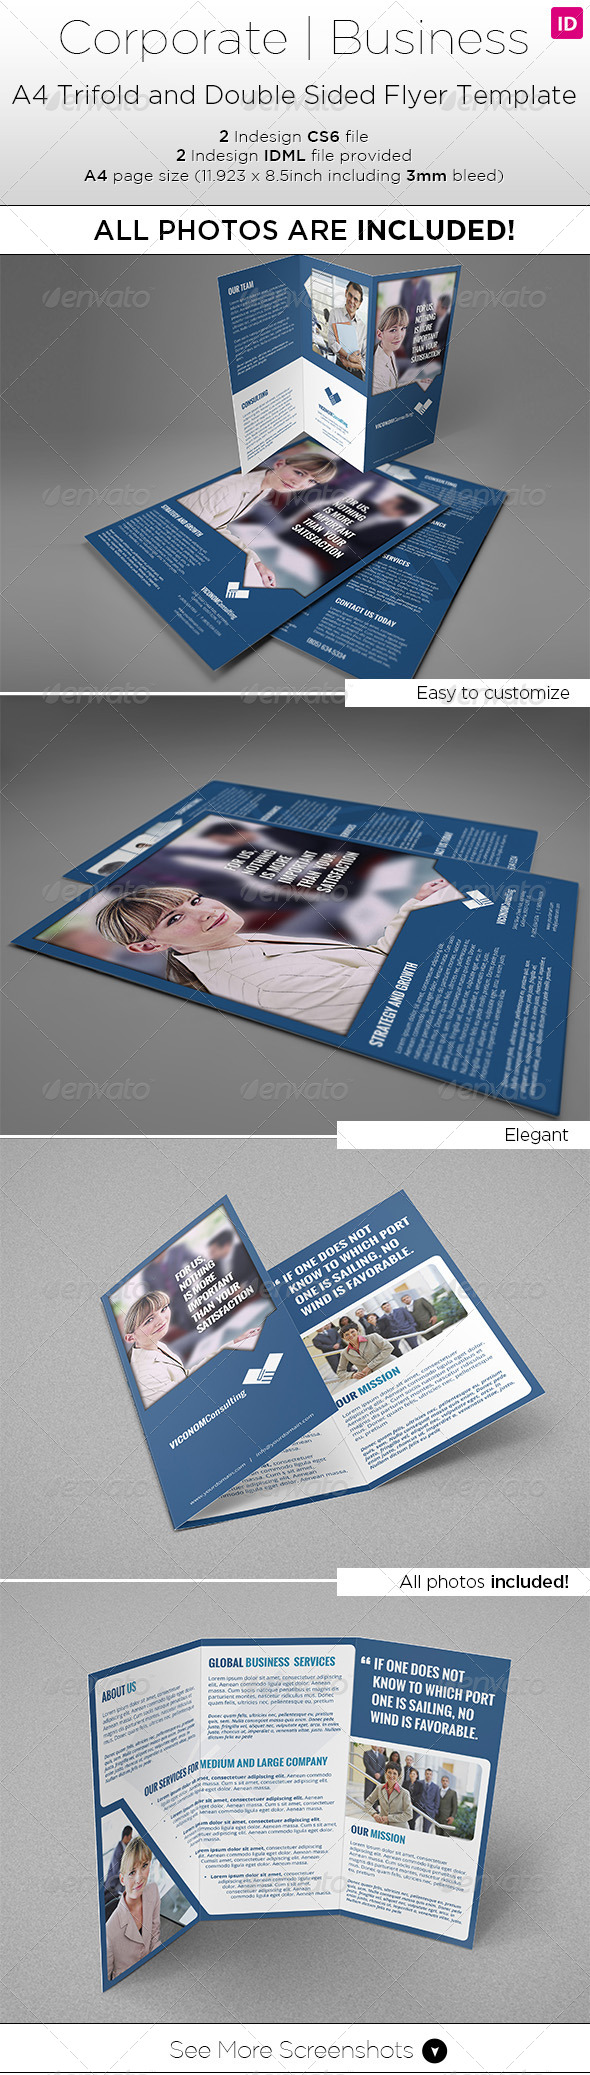 GraphicRiver A4 Trifold & Double Side Flyer Template 7940256